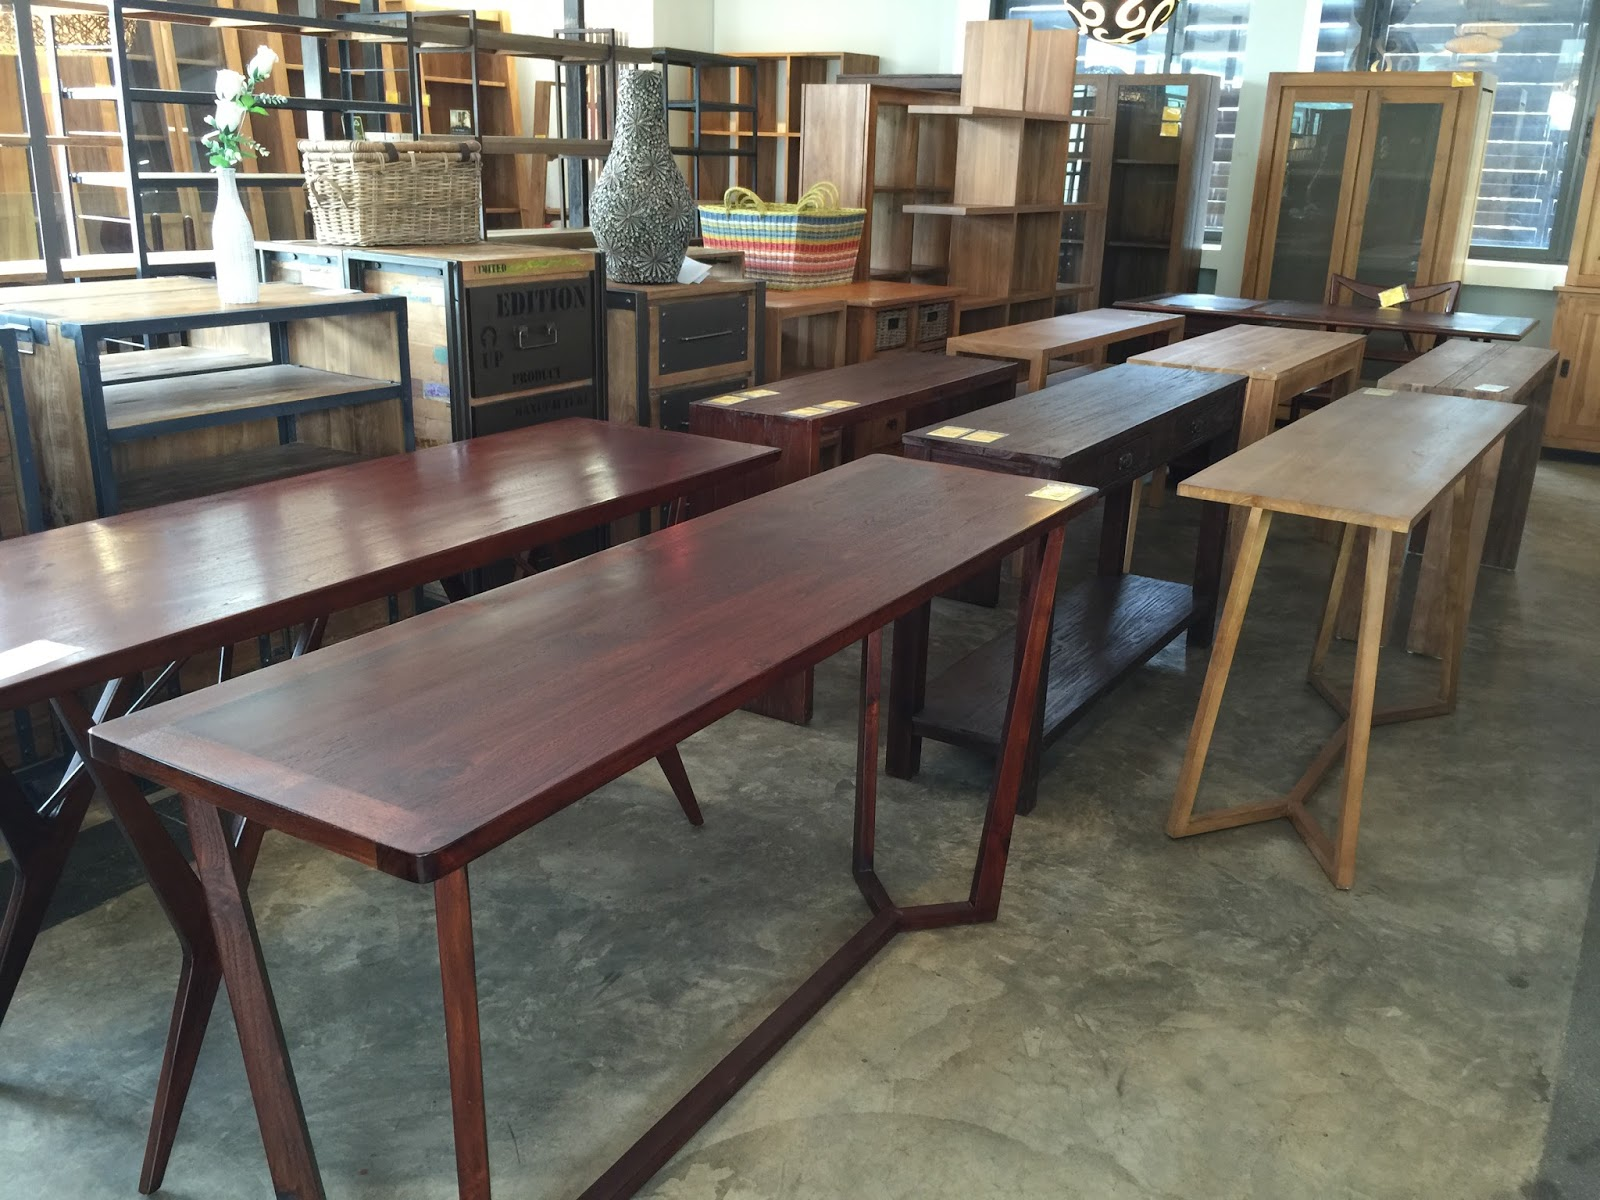 Furniture shopping in kl bangsar